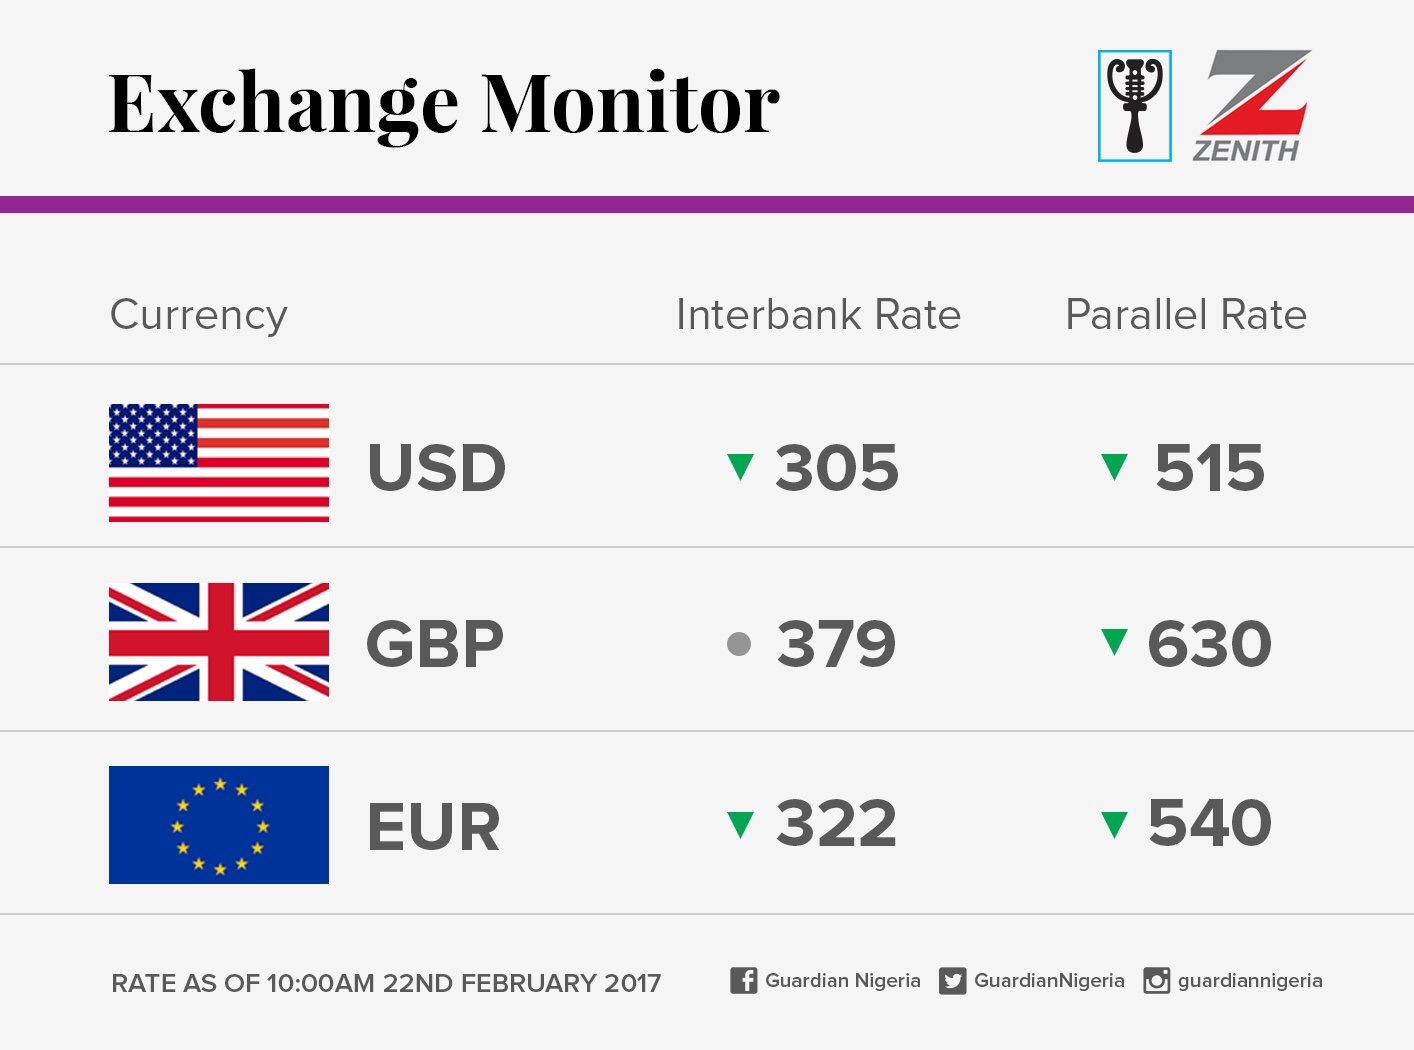 Exchange Rate For 22nd February 2017